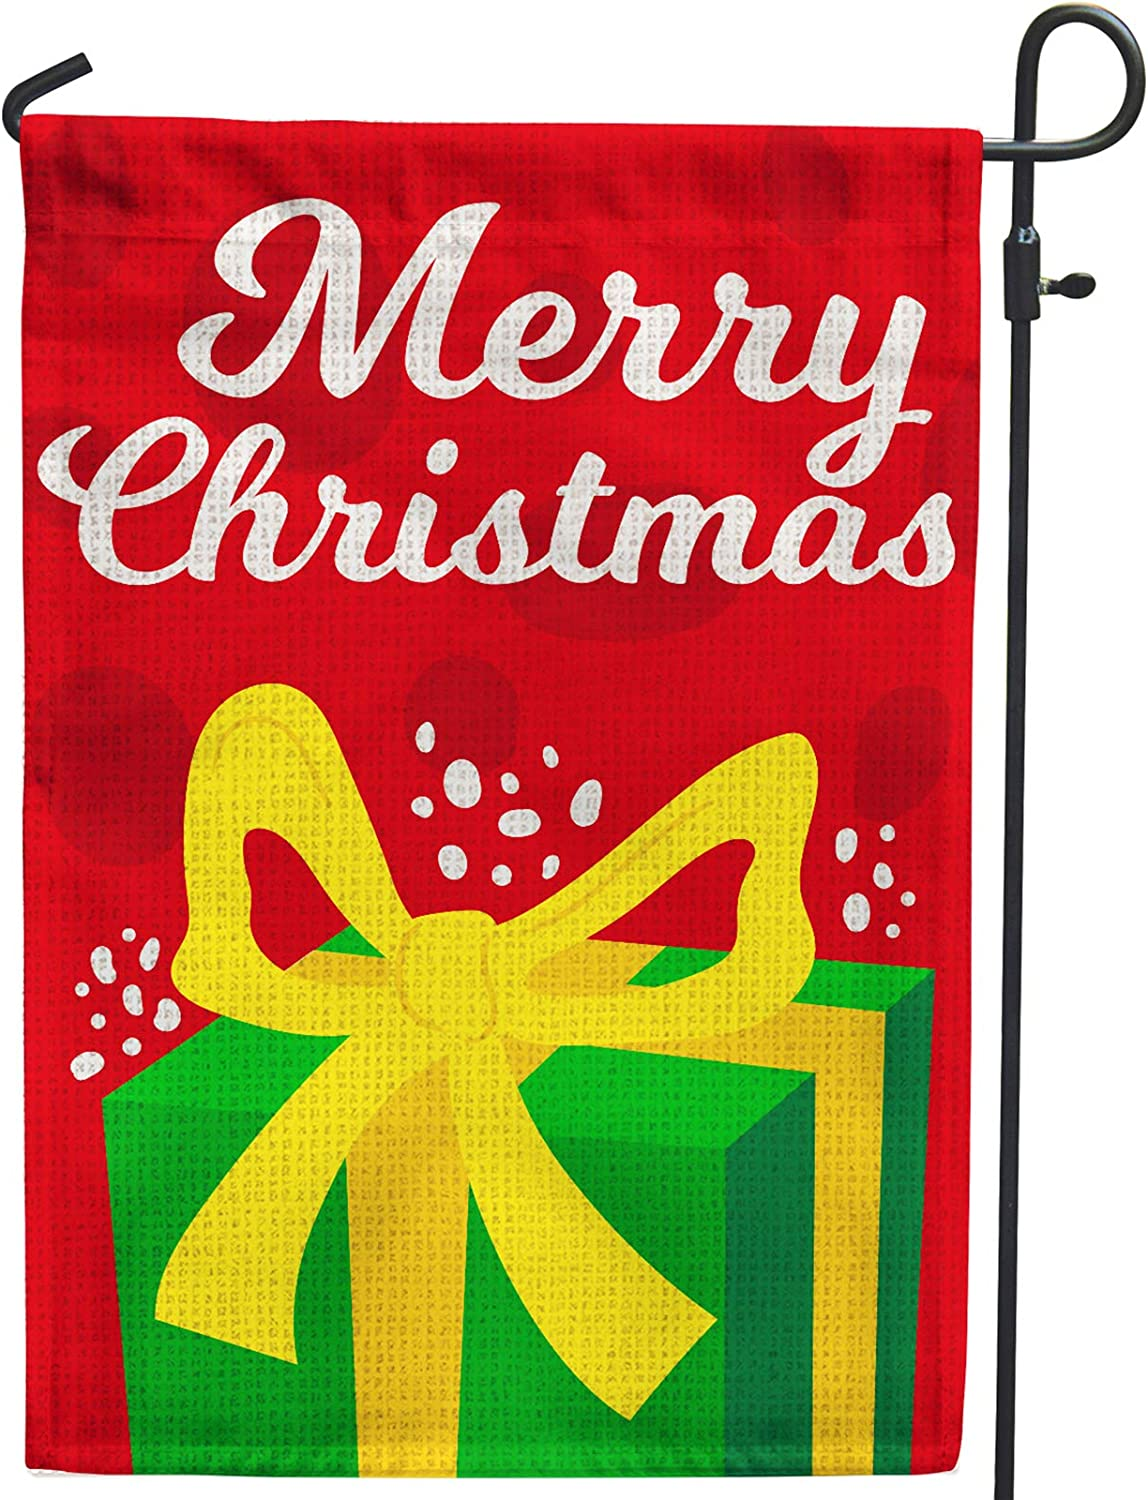 Hollyhorse Merry Christmas Garden Flags for Outside Decoration - 12x18 Double Sided Burlap Flag for Outside Yard Outdoor Decoration & Decor